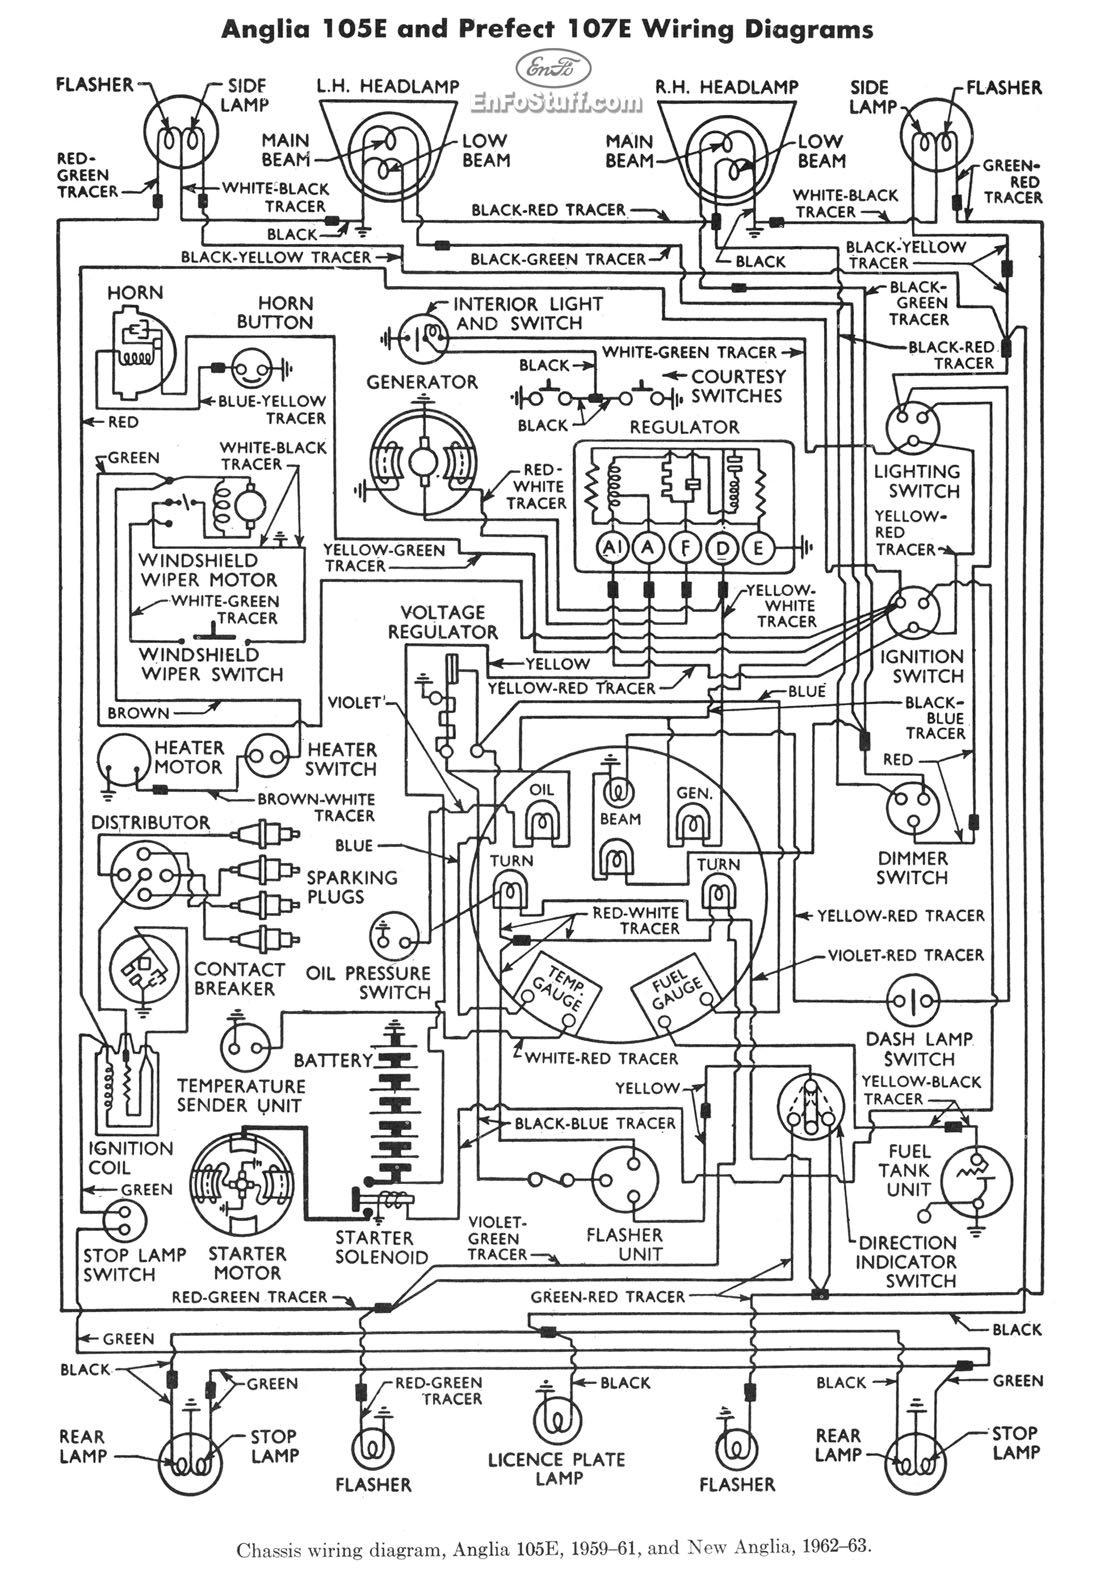 ford anglia105e prefect107e wiring diagram wiring diagram for ford anglia 105e, 1959 61 and new anglia 1962 1959 ford wiring diagram at reclaimingppi.co